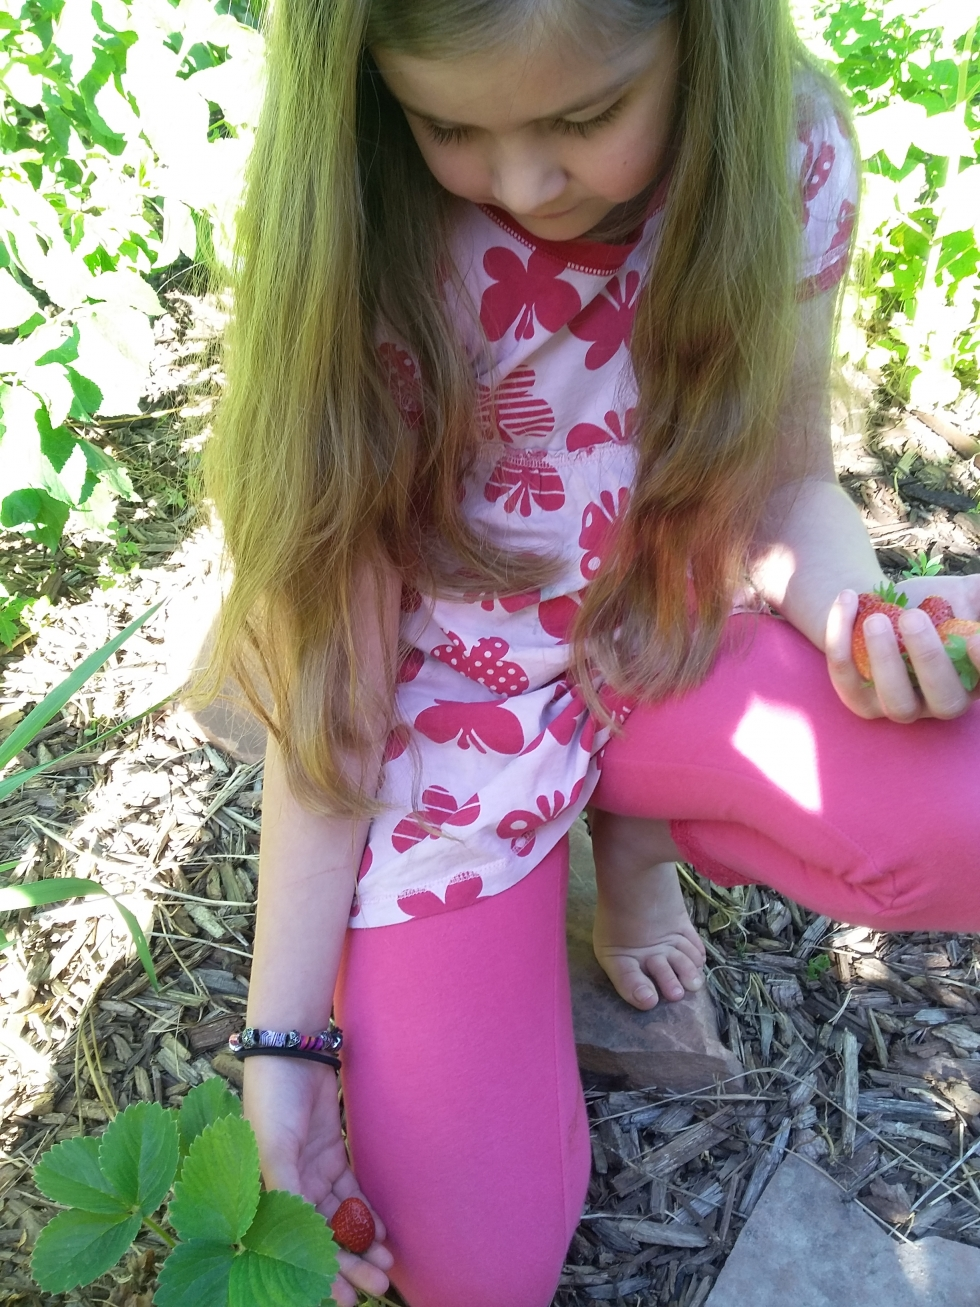 Willow Jordan enjoys the fruits of her labor as she picks strawberries in her garden.  Photo by Amy Jordan